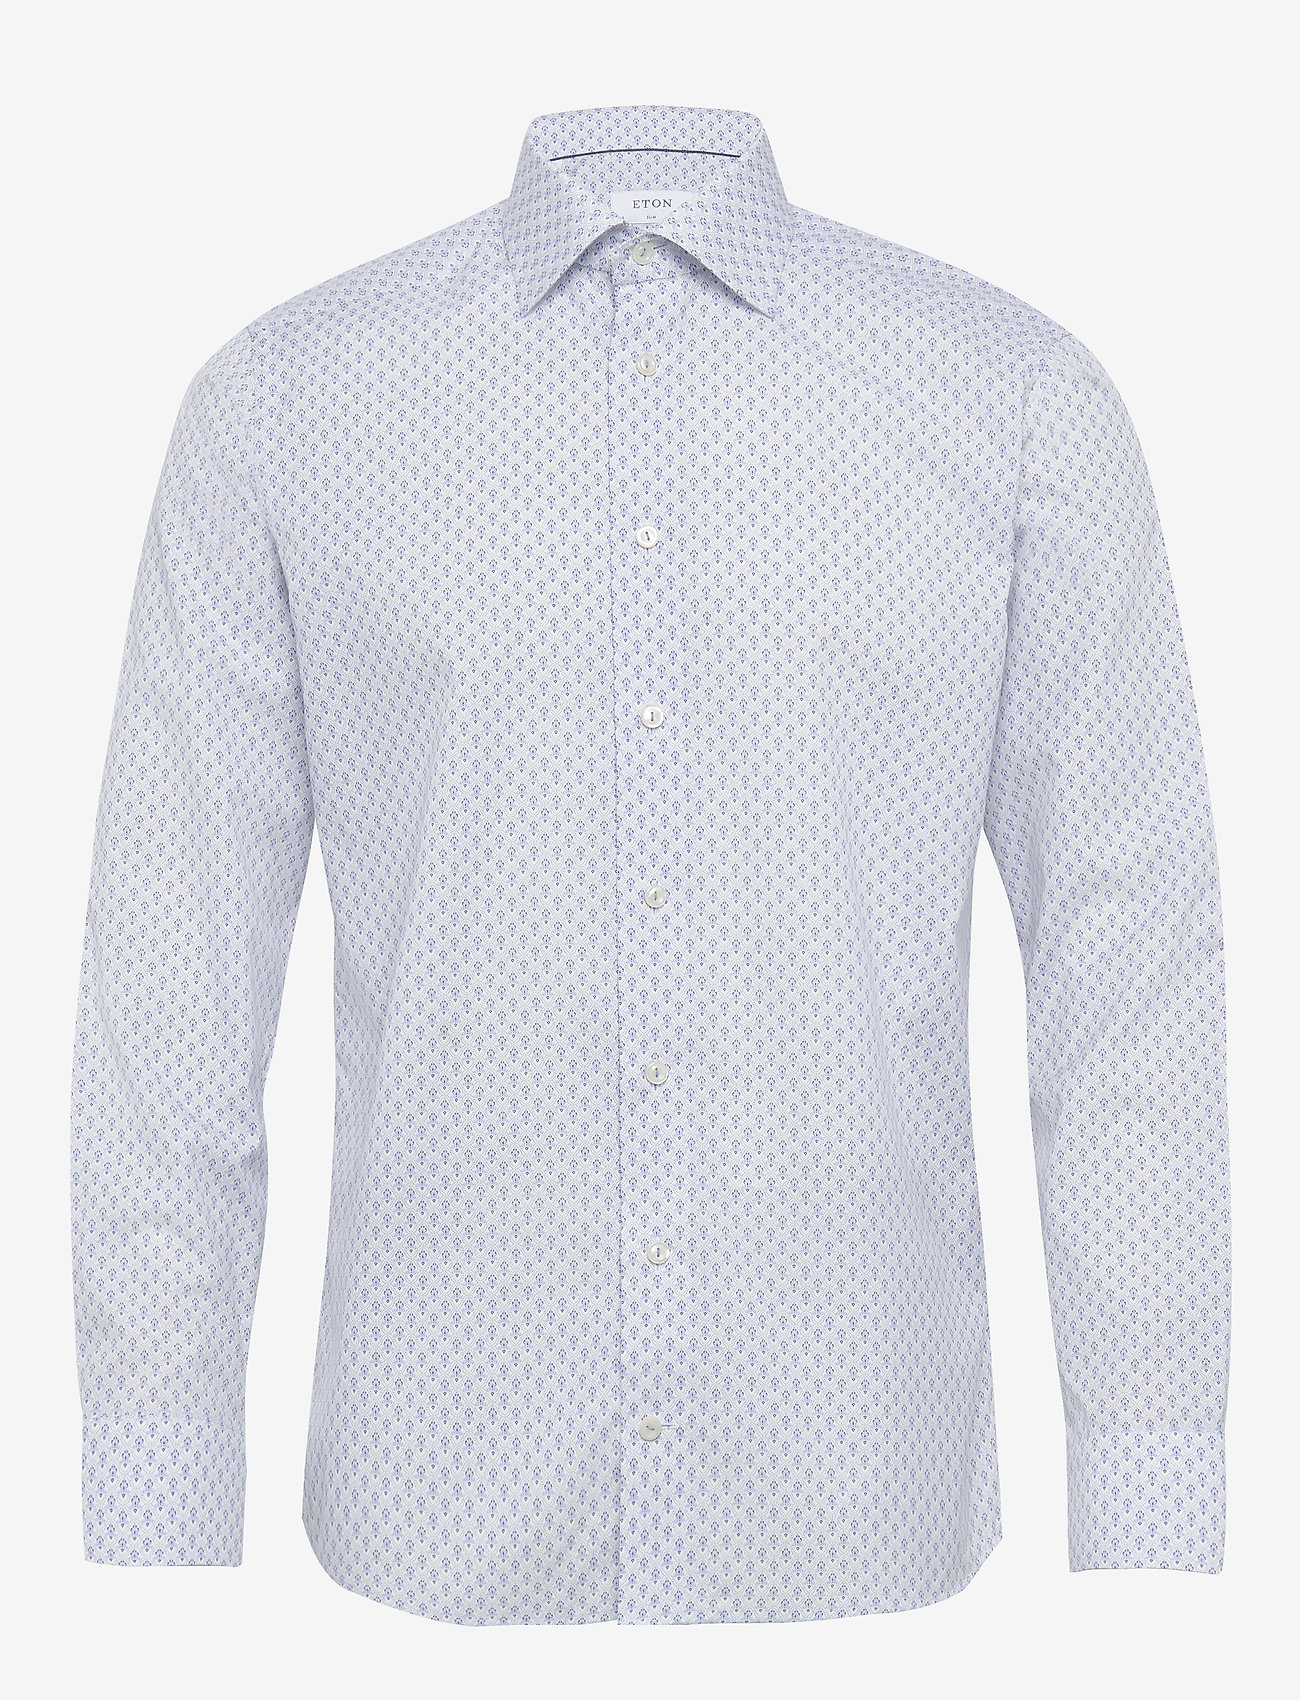 Medallion Poplin Shirt (Blue) (107.40 €) - Eton Lqd15